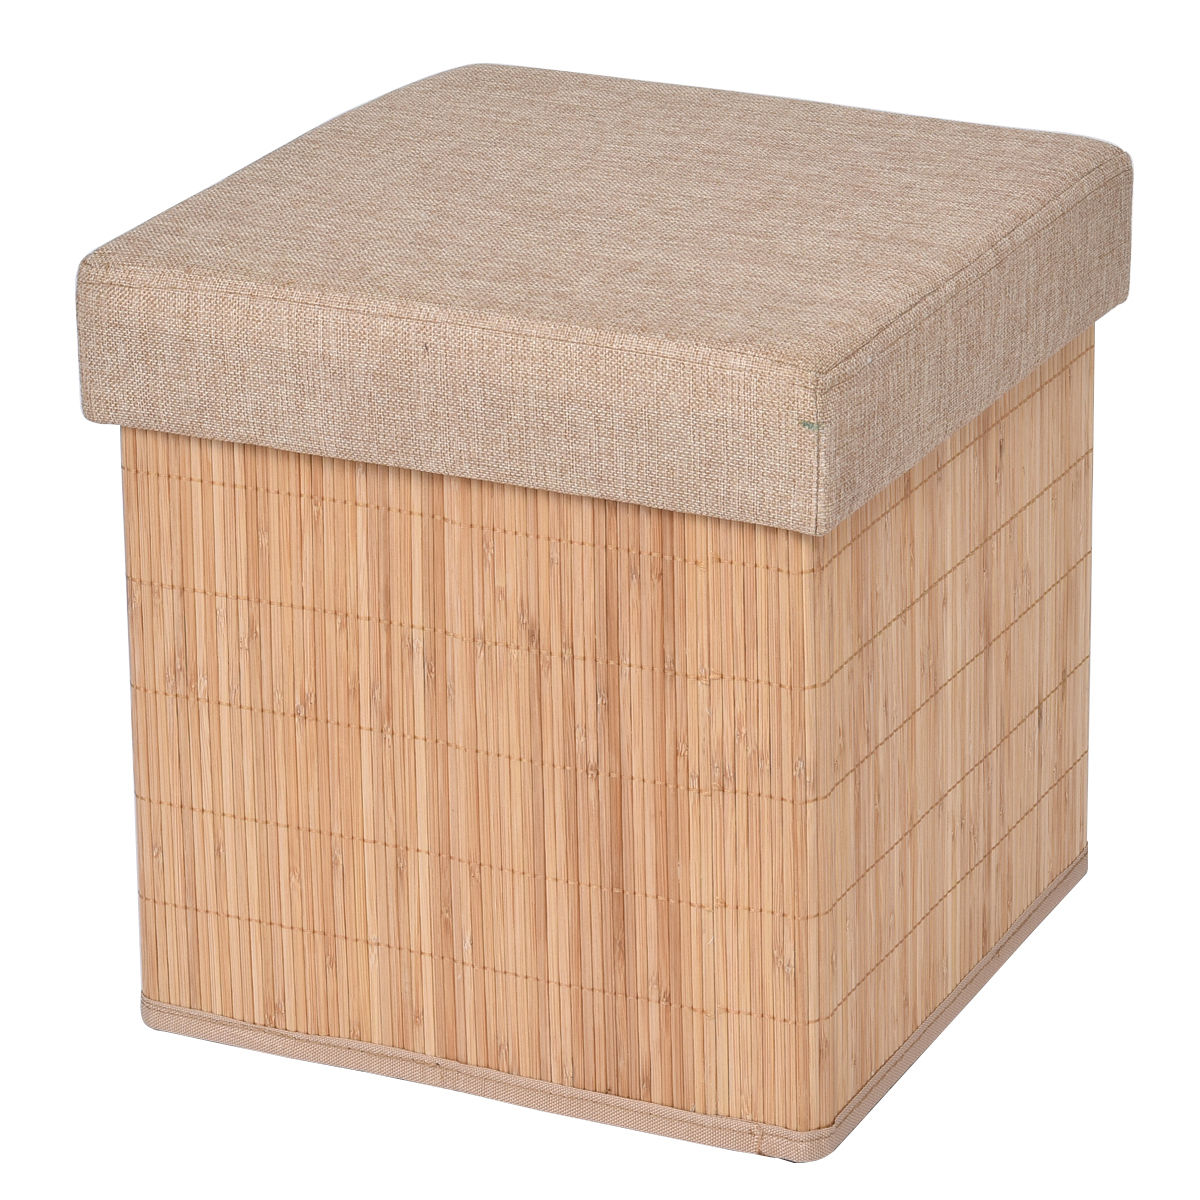 Gymax Folding Storage Cube Bamboo Ottoman Seat Footrest